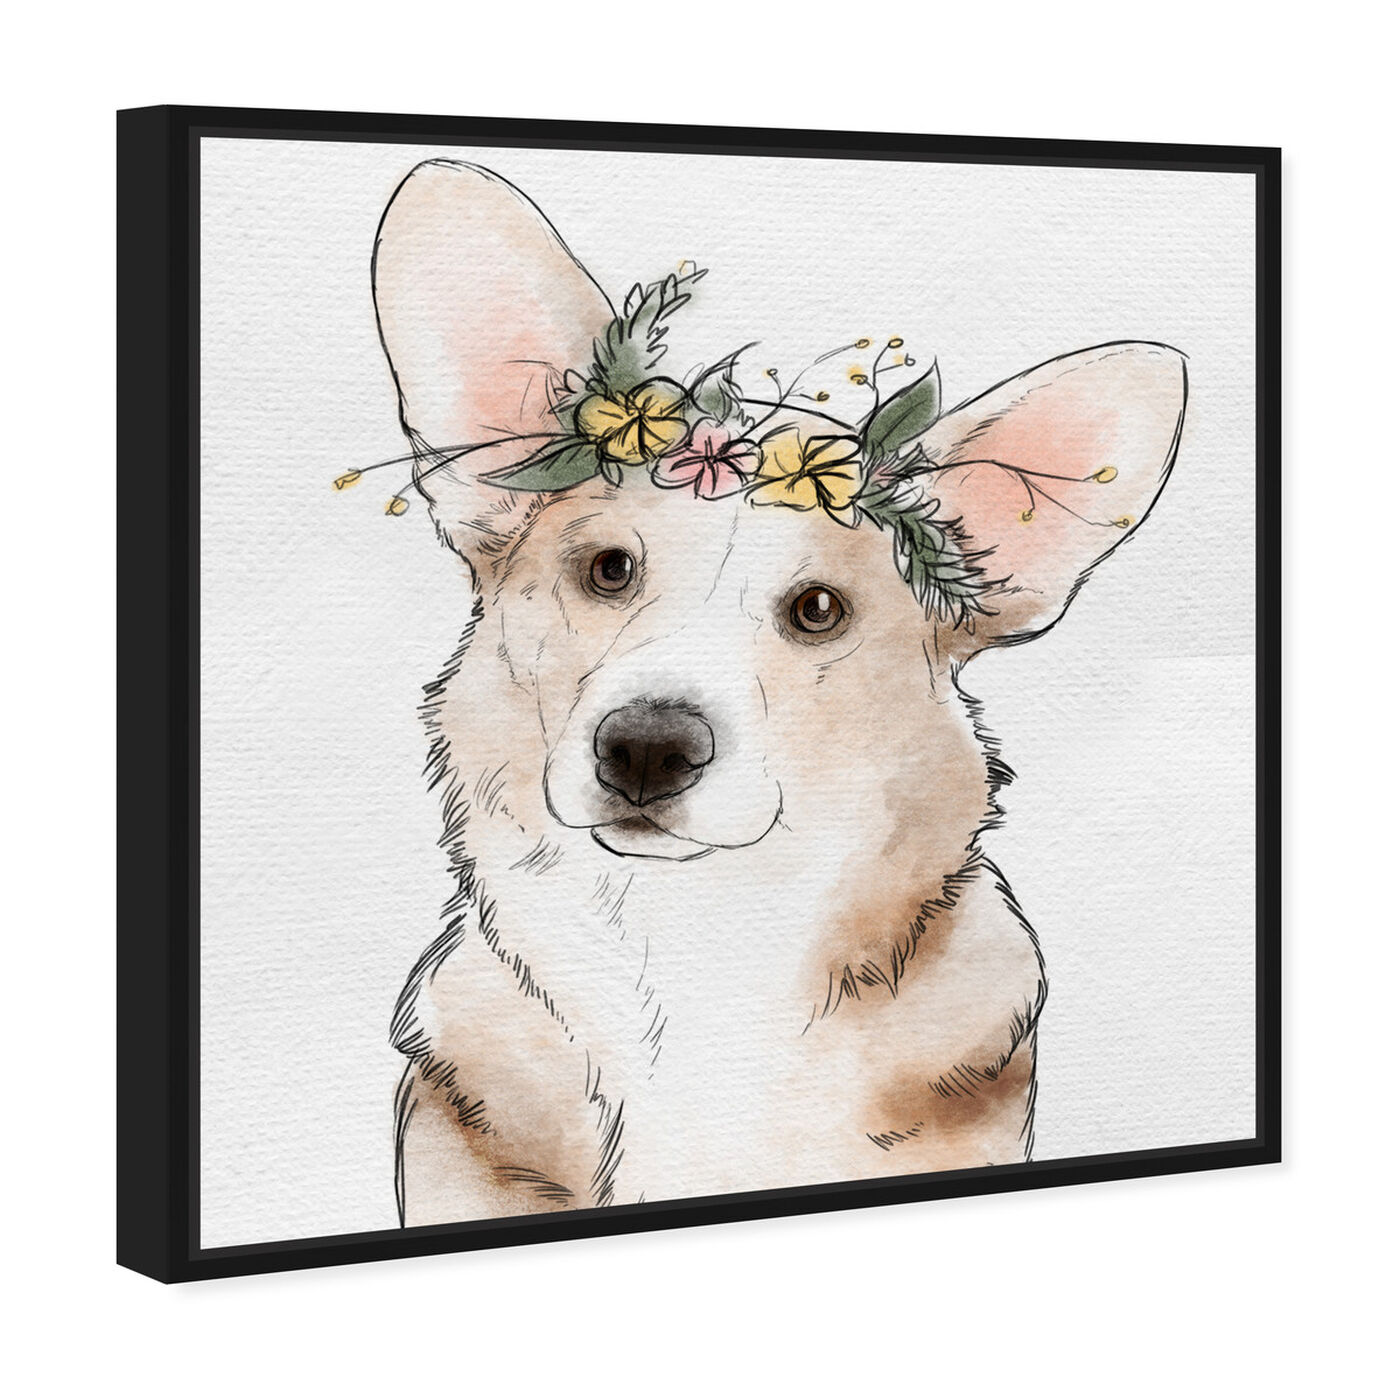 Angled view of Floral Crown Corgi featuring animals and dogs and puppies art.